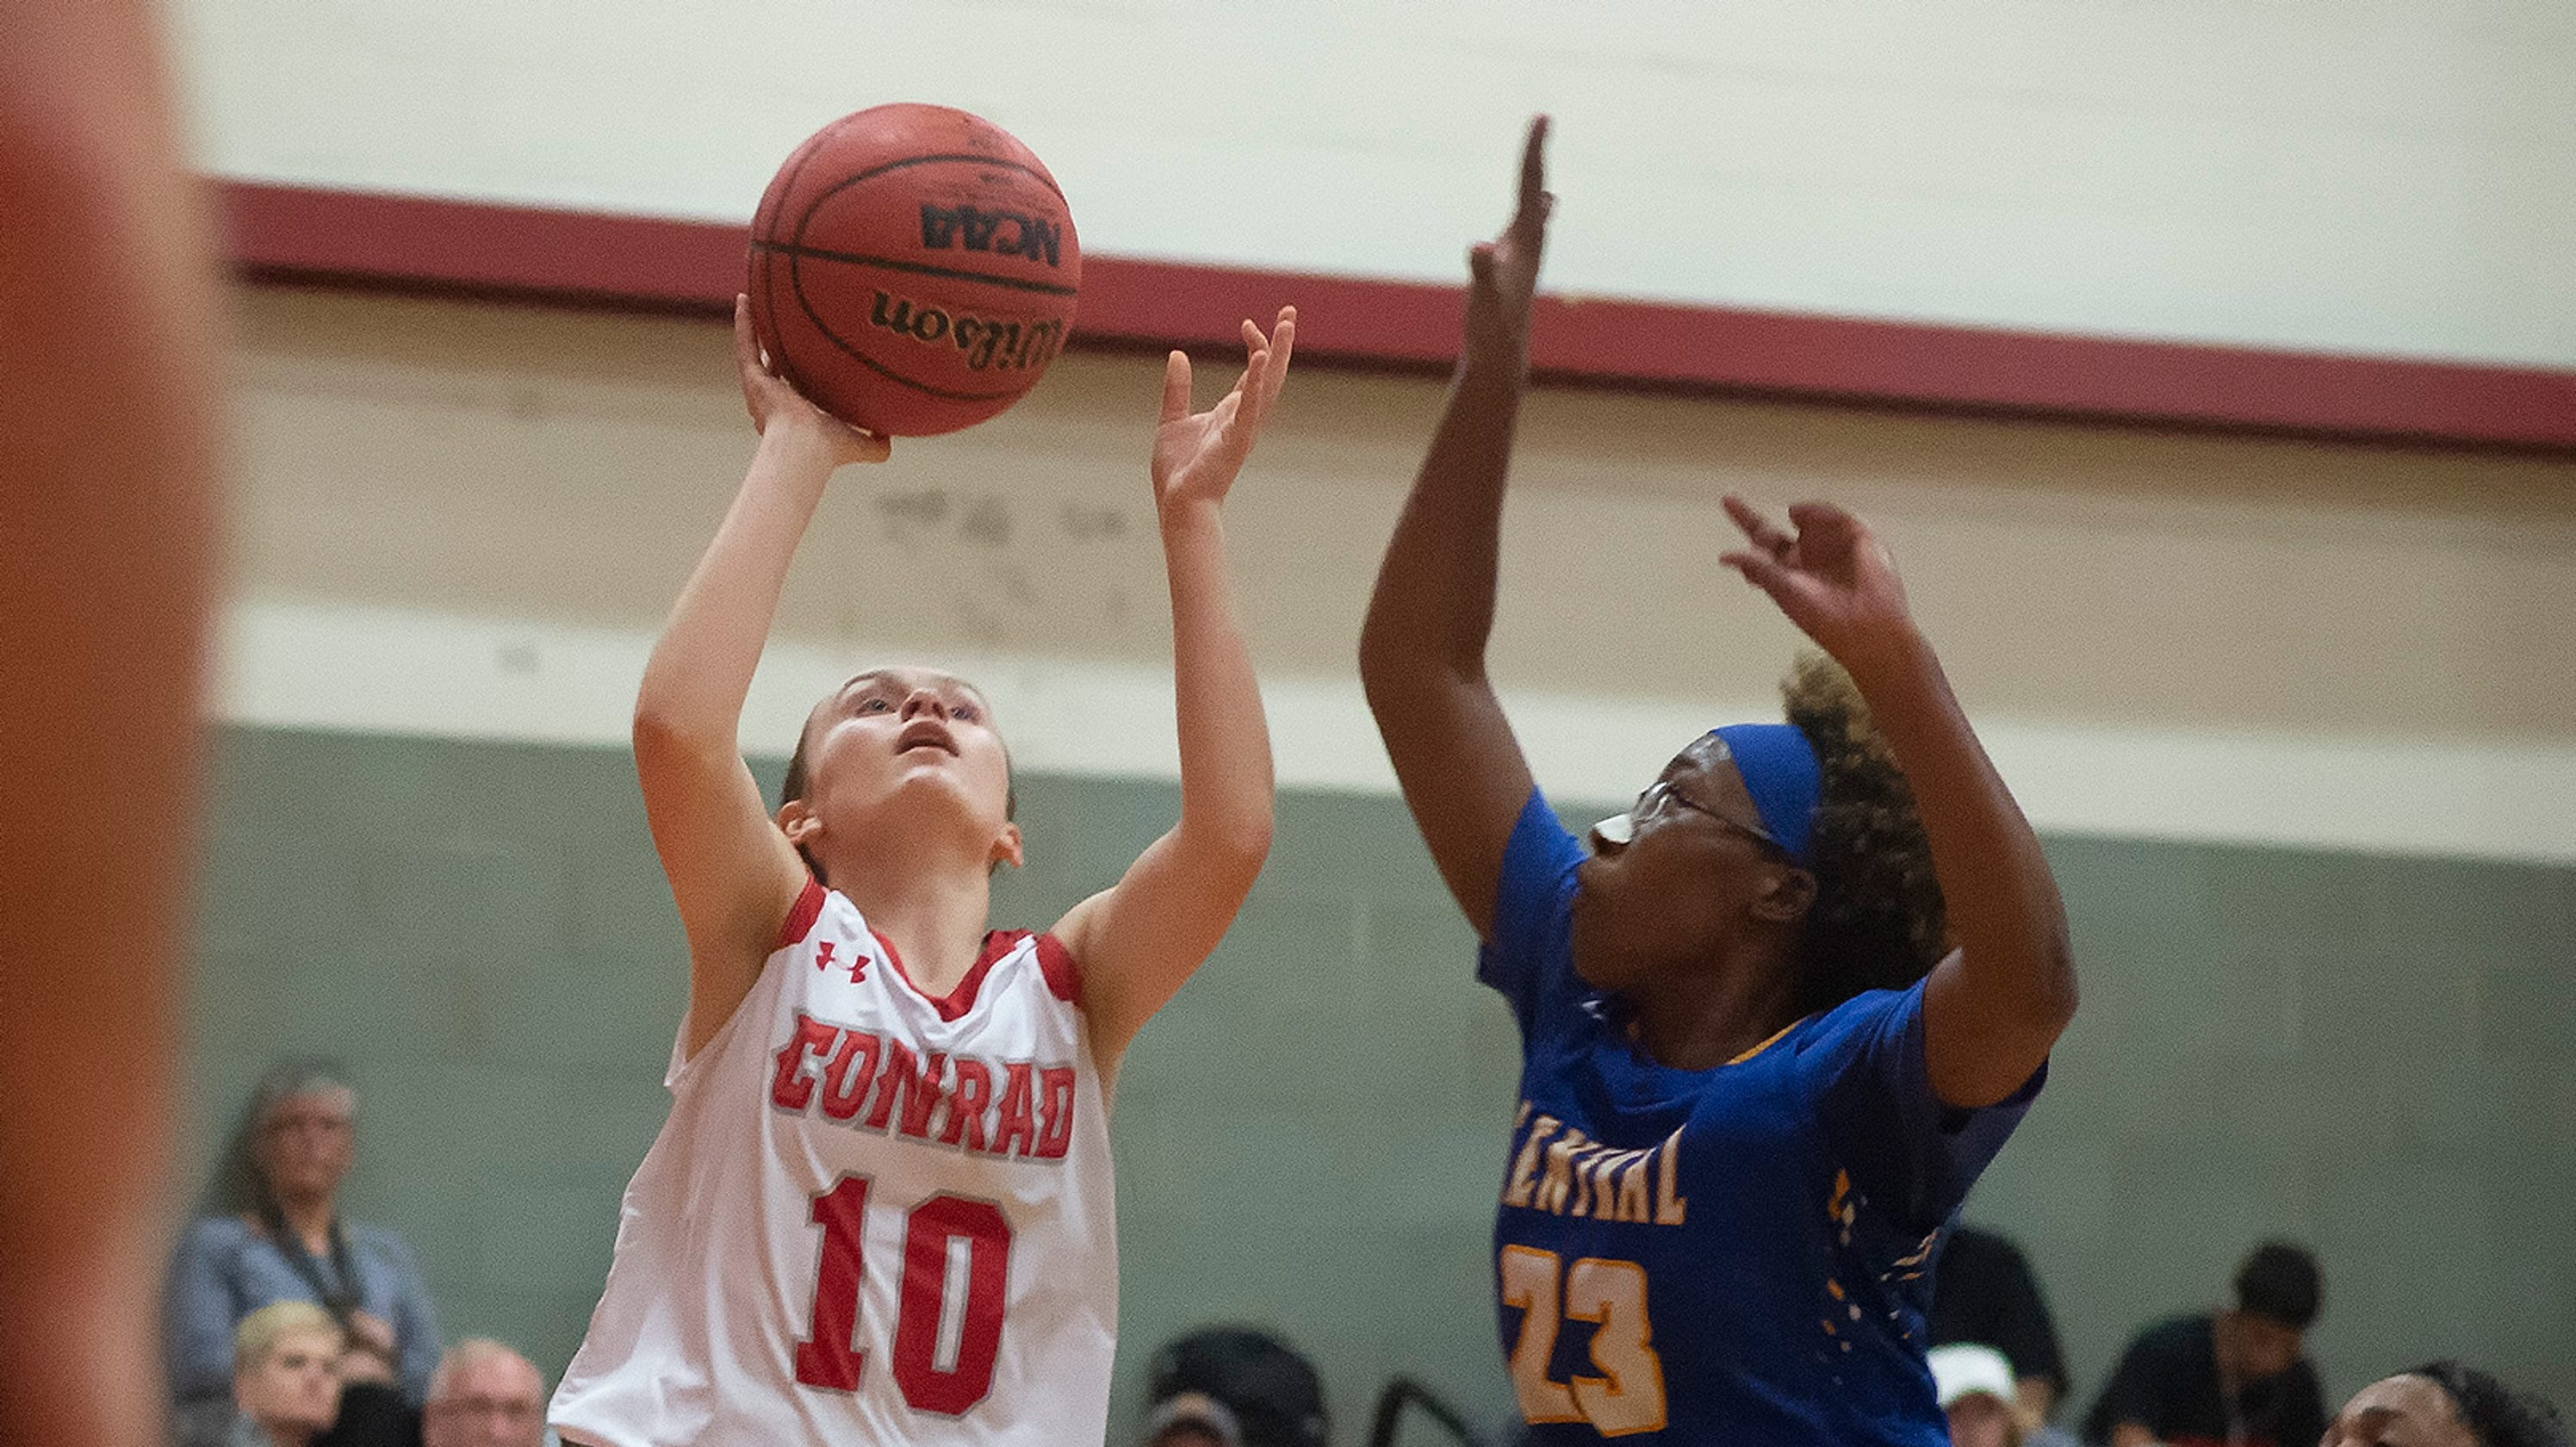 9f85d10bb09c Conrad girls basketball meets national opponents in Diamond State Classic